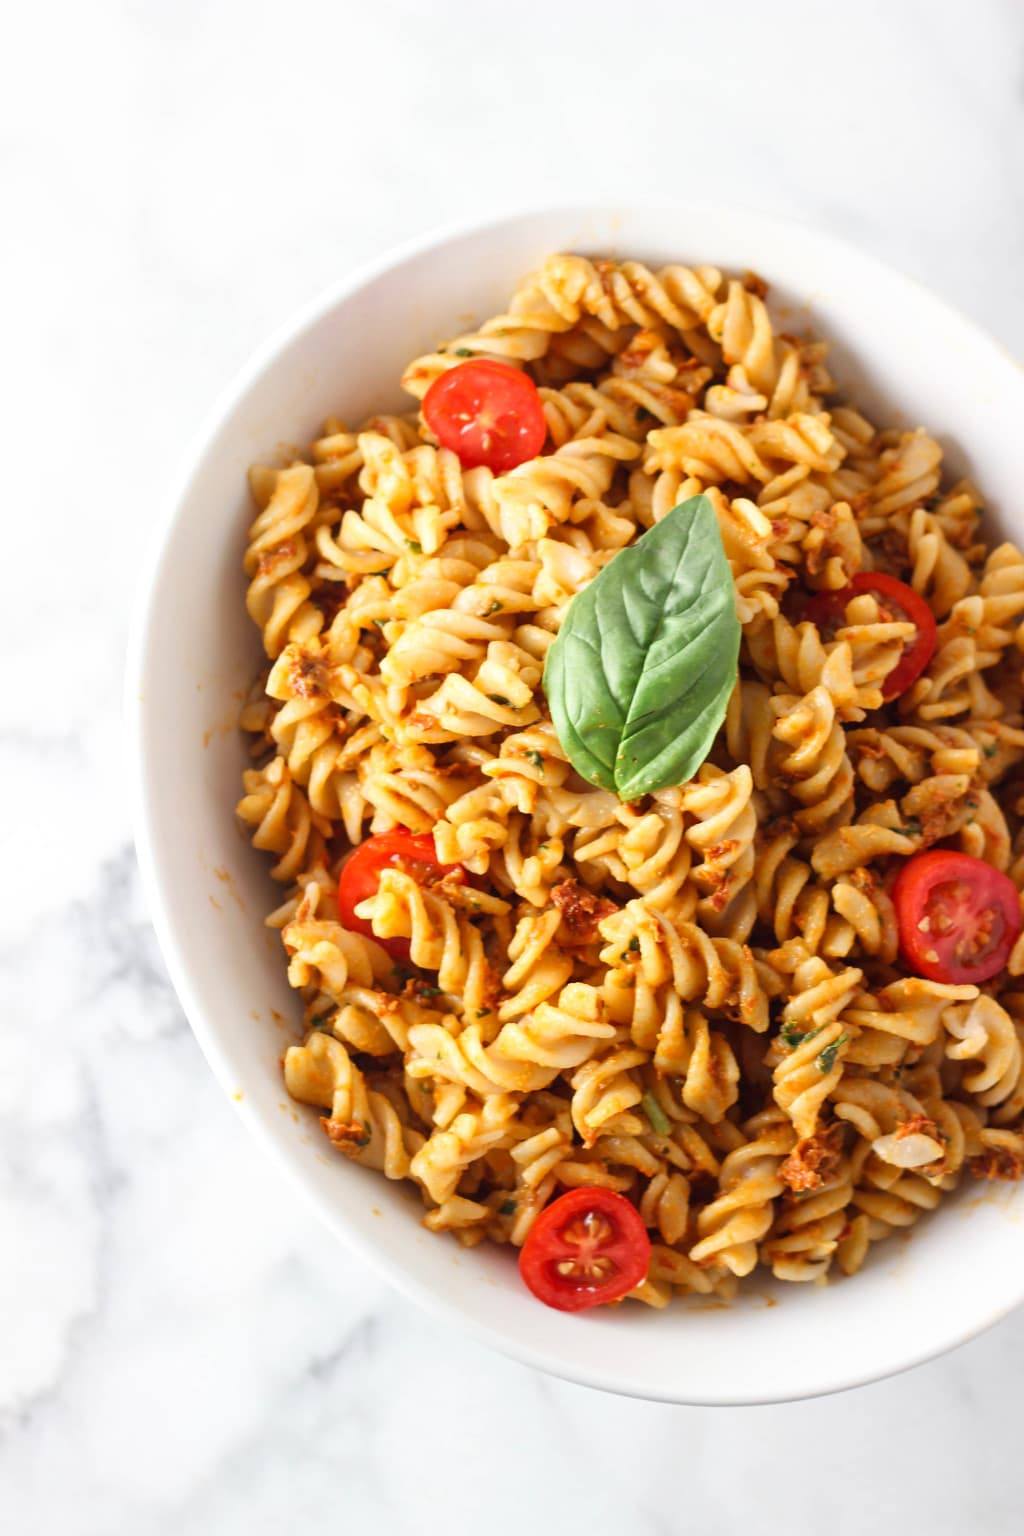 Vegan Sun Dried Tomato Pesto Pasta Dish that makes the perfect Summer dish! This recipe is vegan and gluten-free! Loaded with so many vitamins, minerals, antioxidants and more!